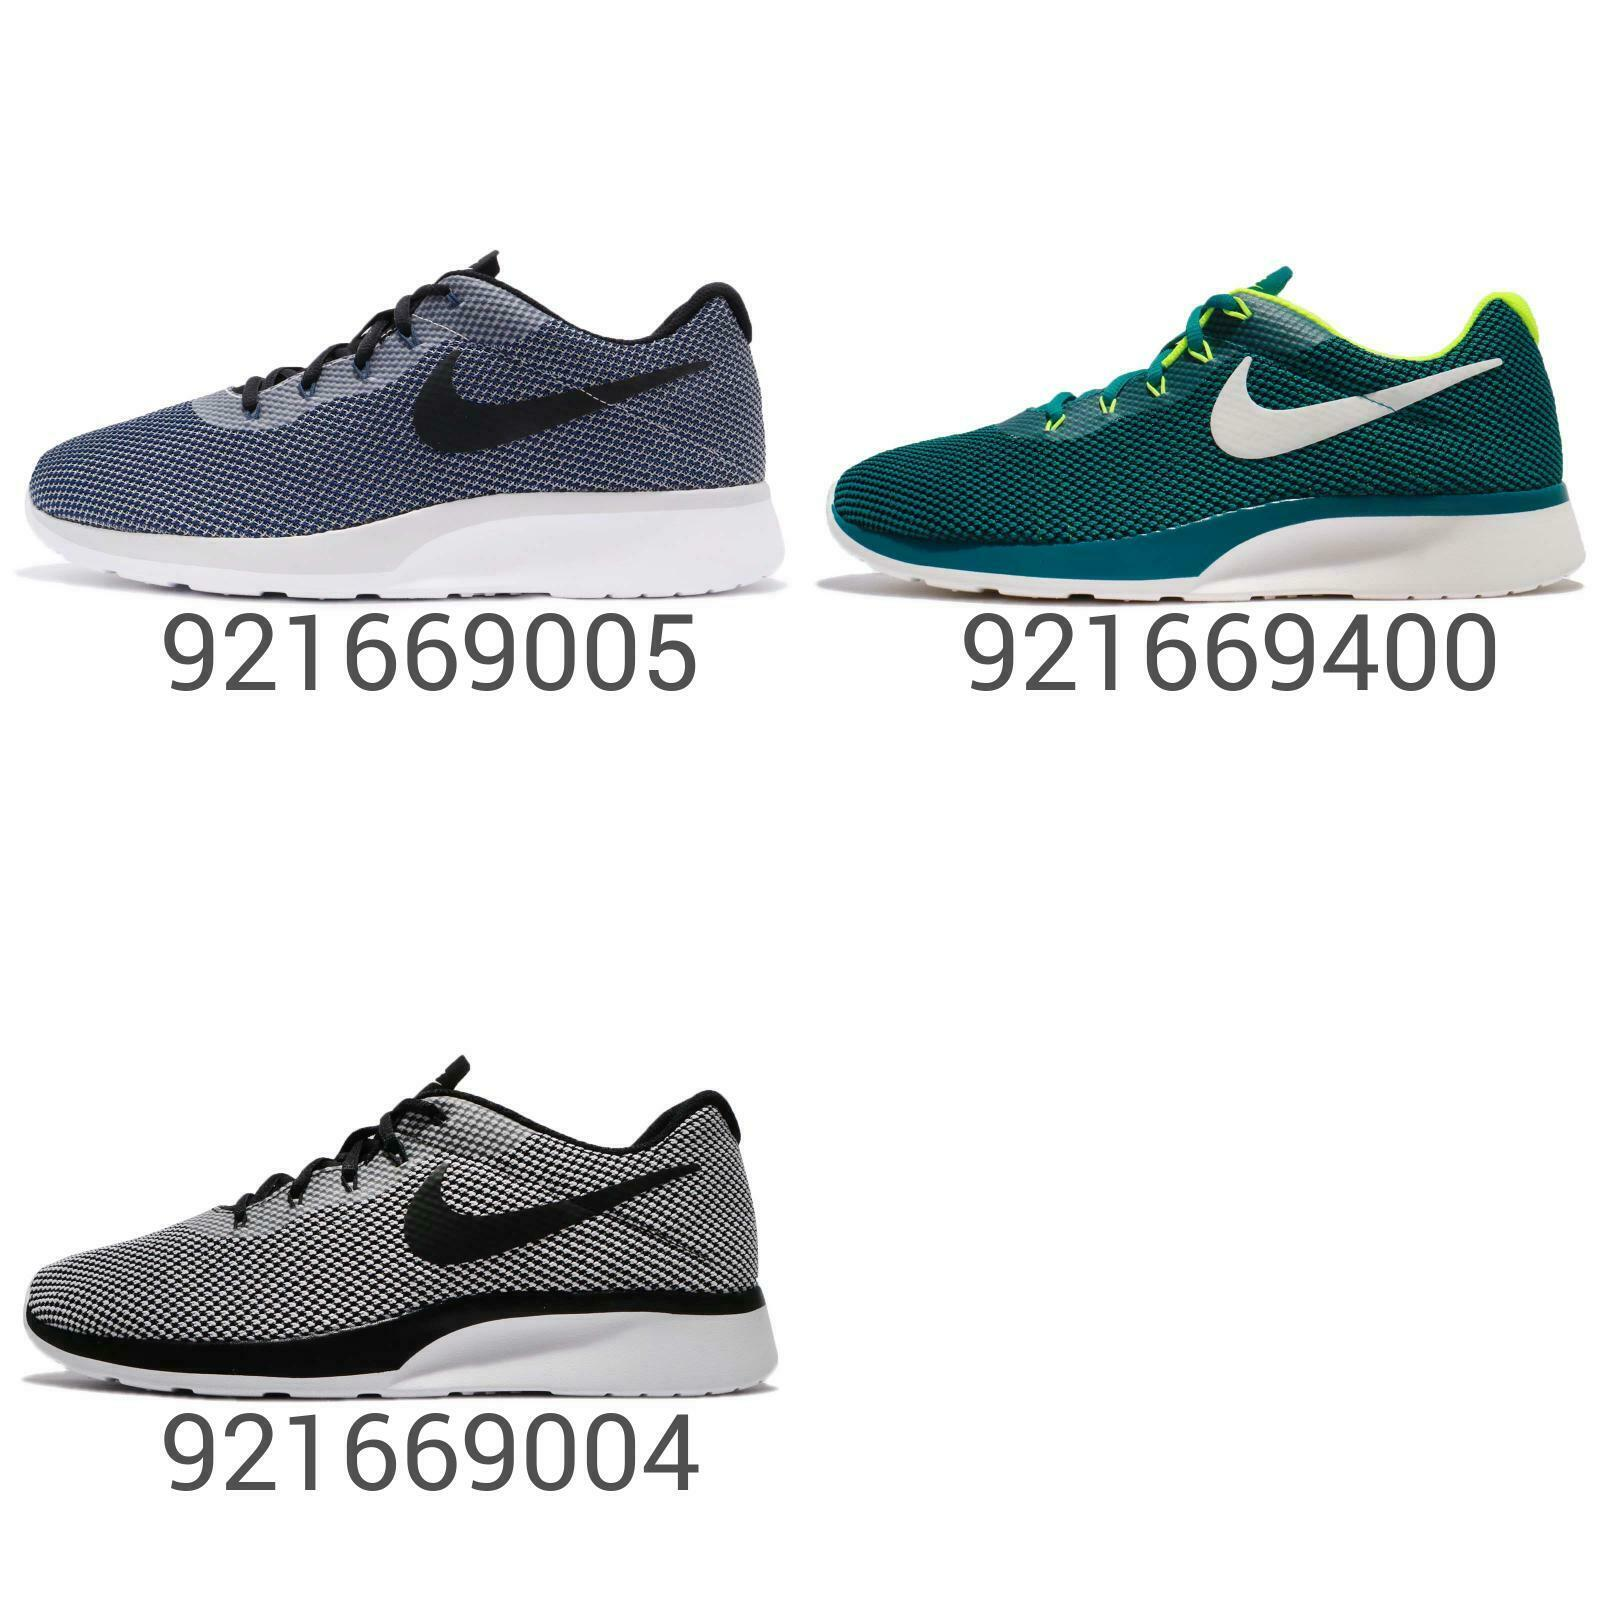 Nike Tanjun Racer Mens Sportswear Running shoes NSW Sneakers Pick 1